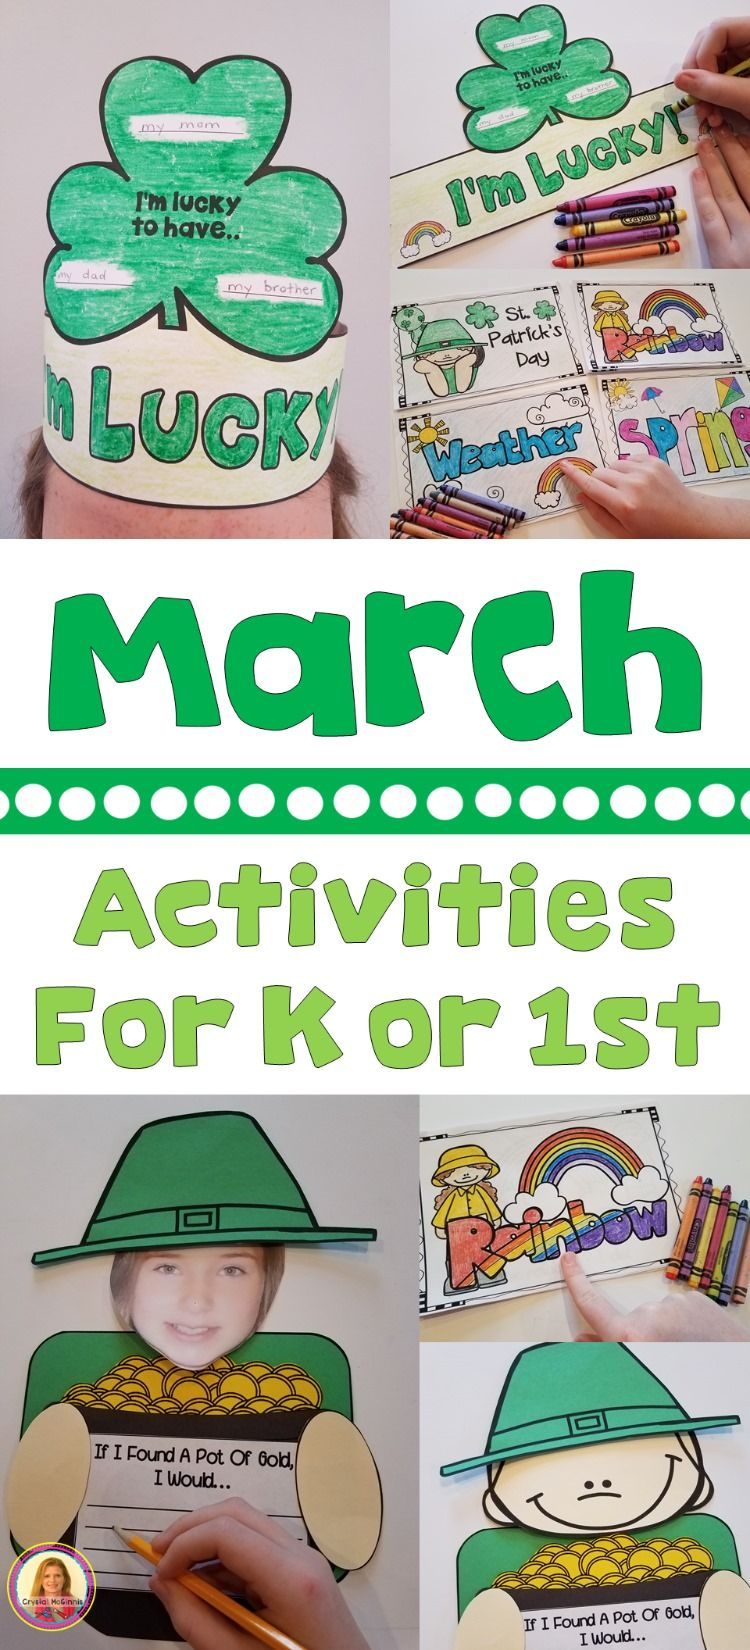 March Activities For Kindergarten Or First Grade St Patrick's Day